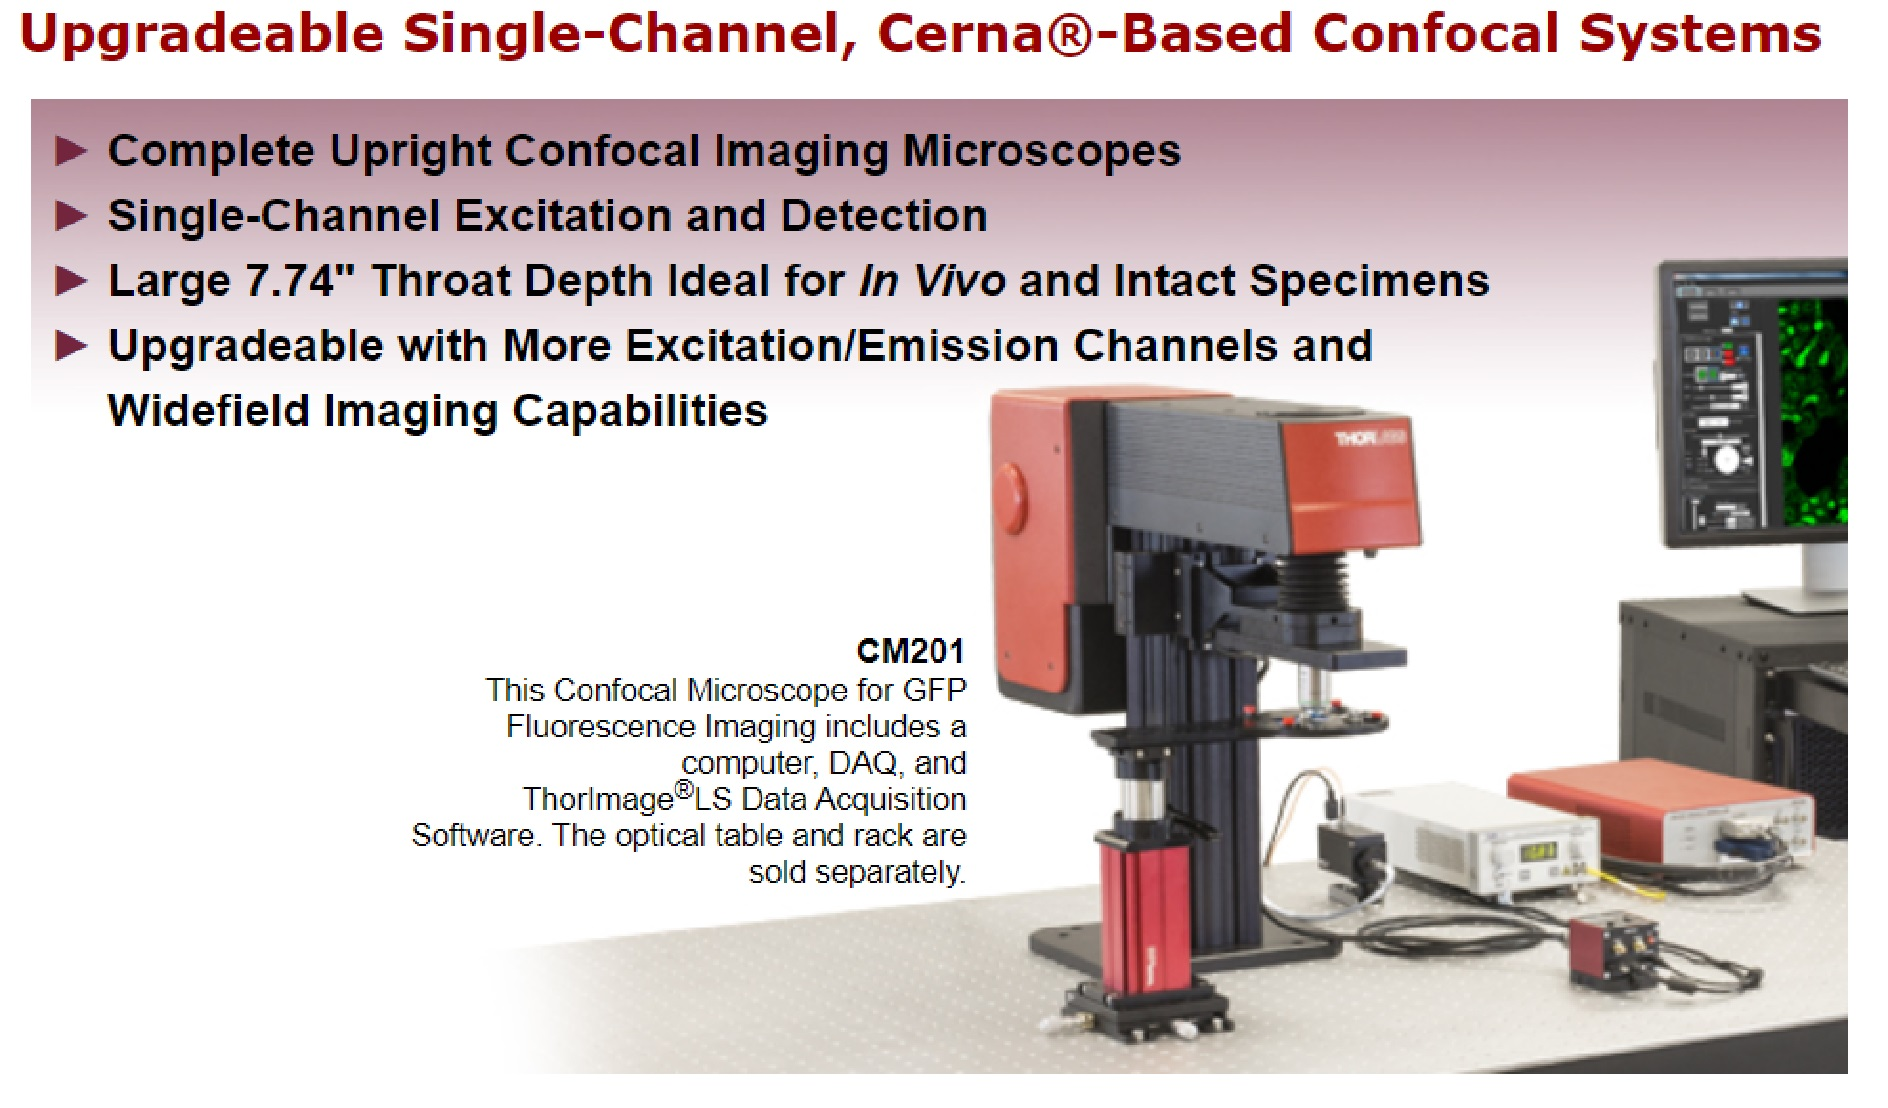 Upgradeable Single-Channel, Cerna®-Based Confocal Systems